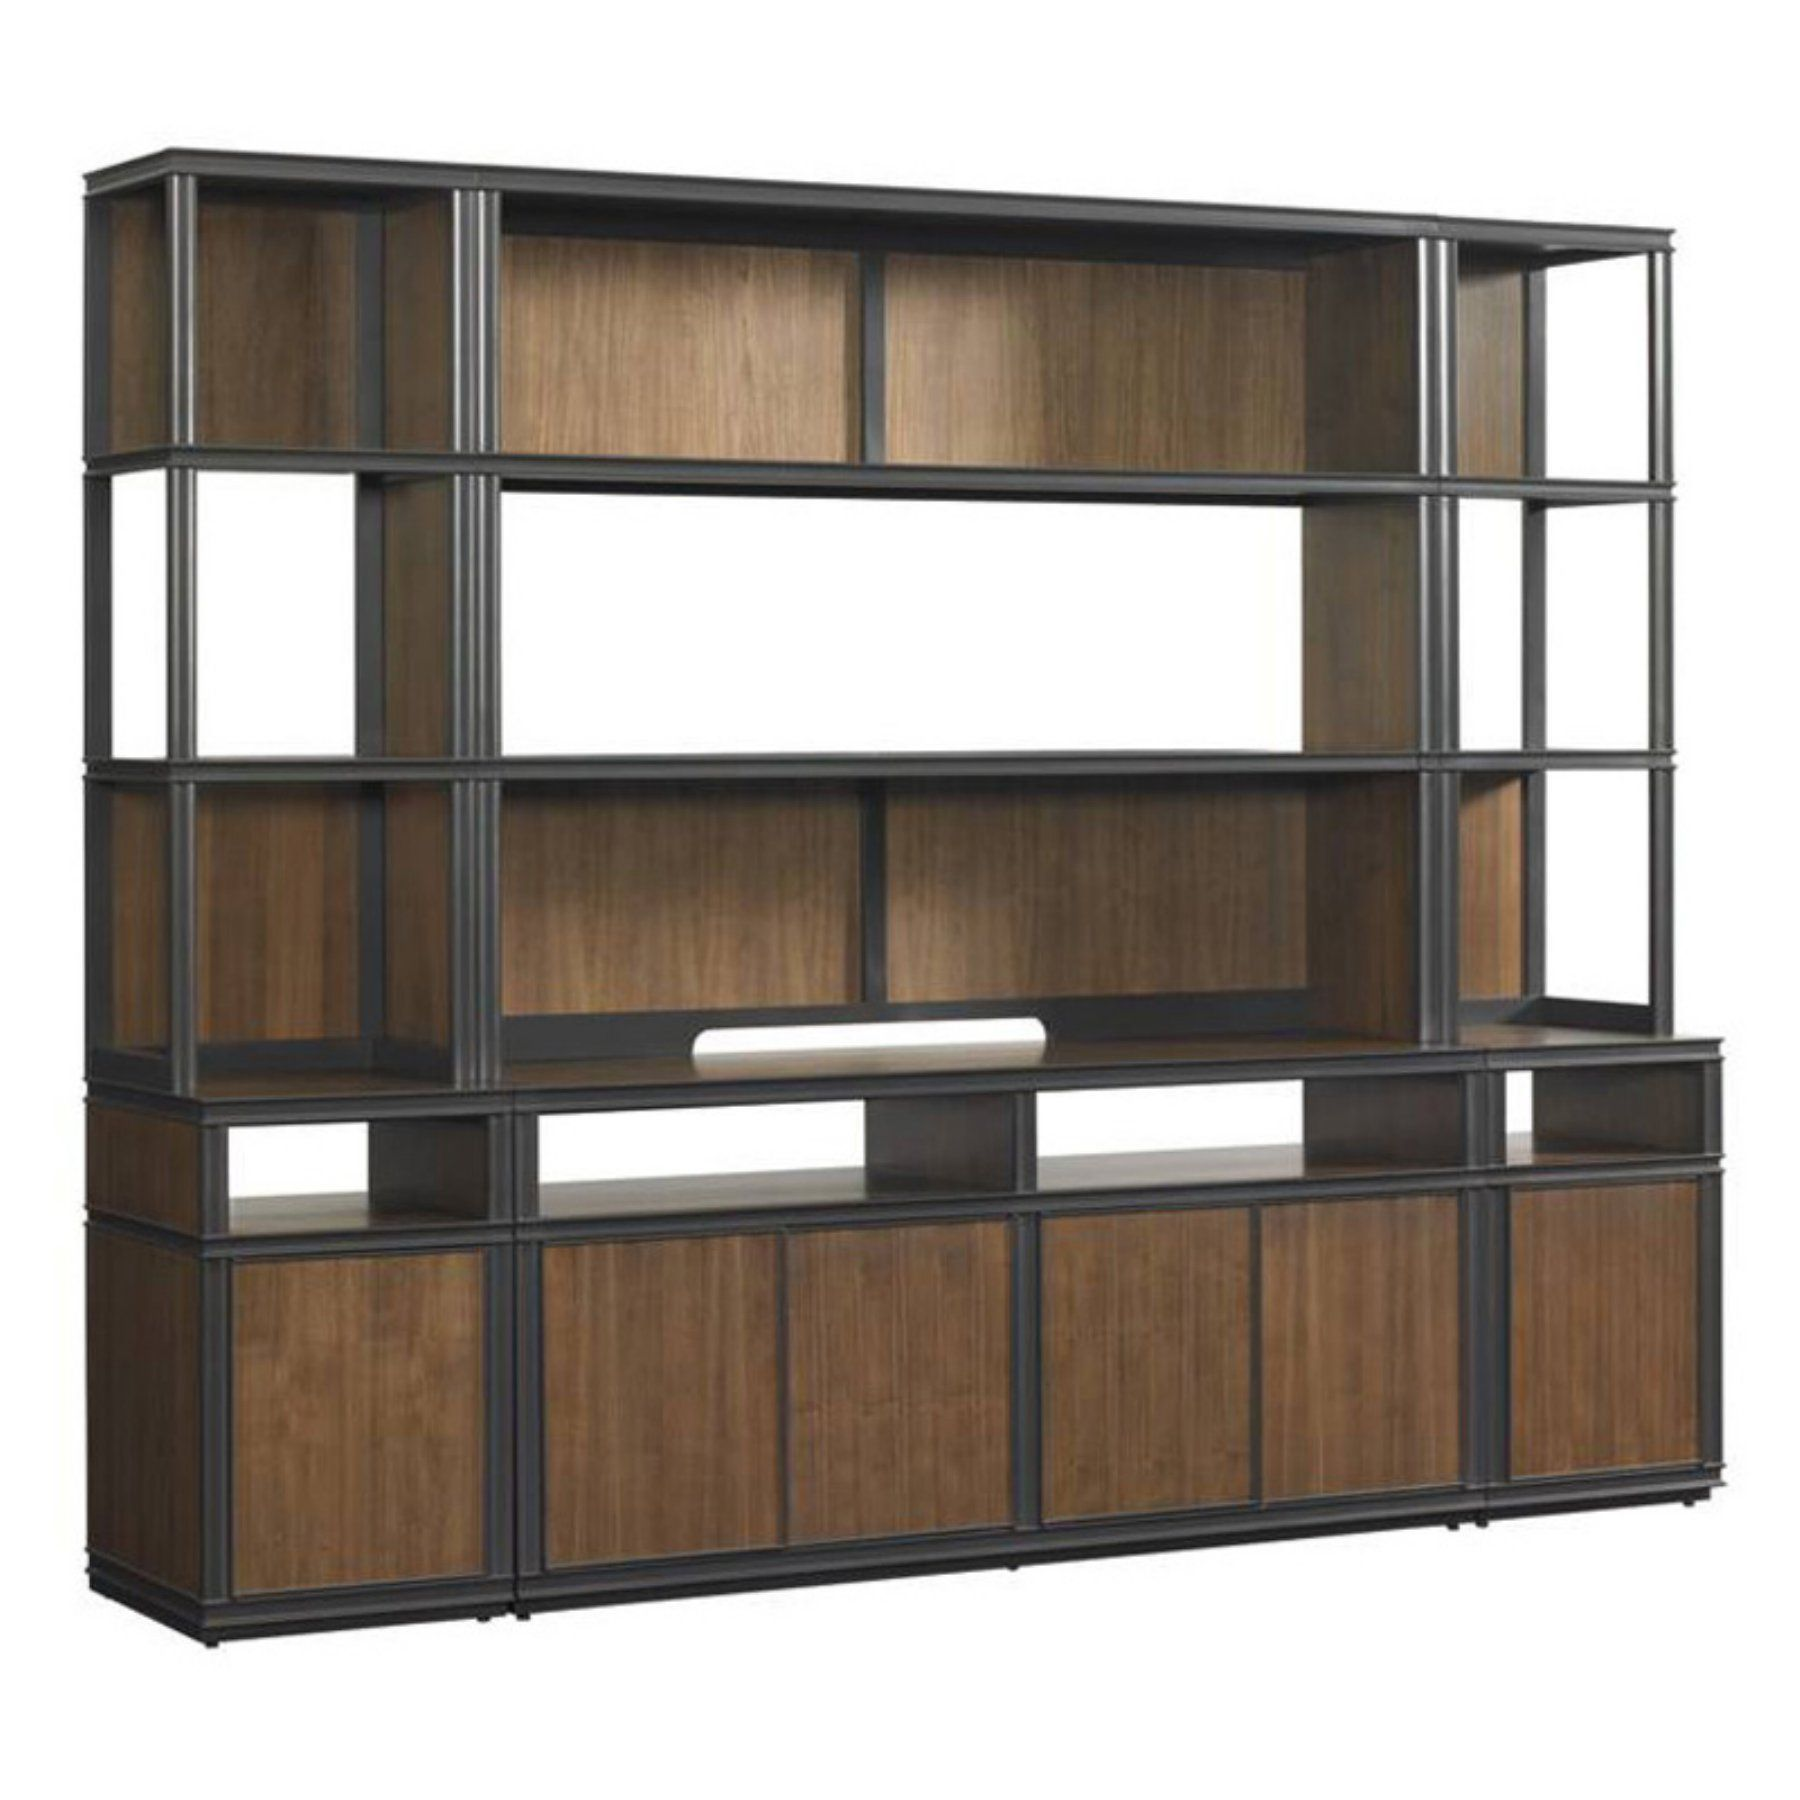 Stanley furniture montreux media wall entertainment center